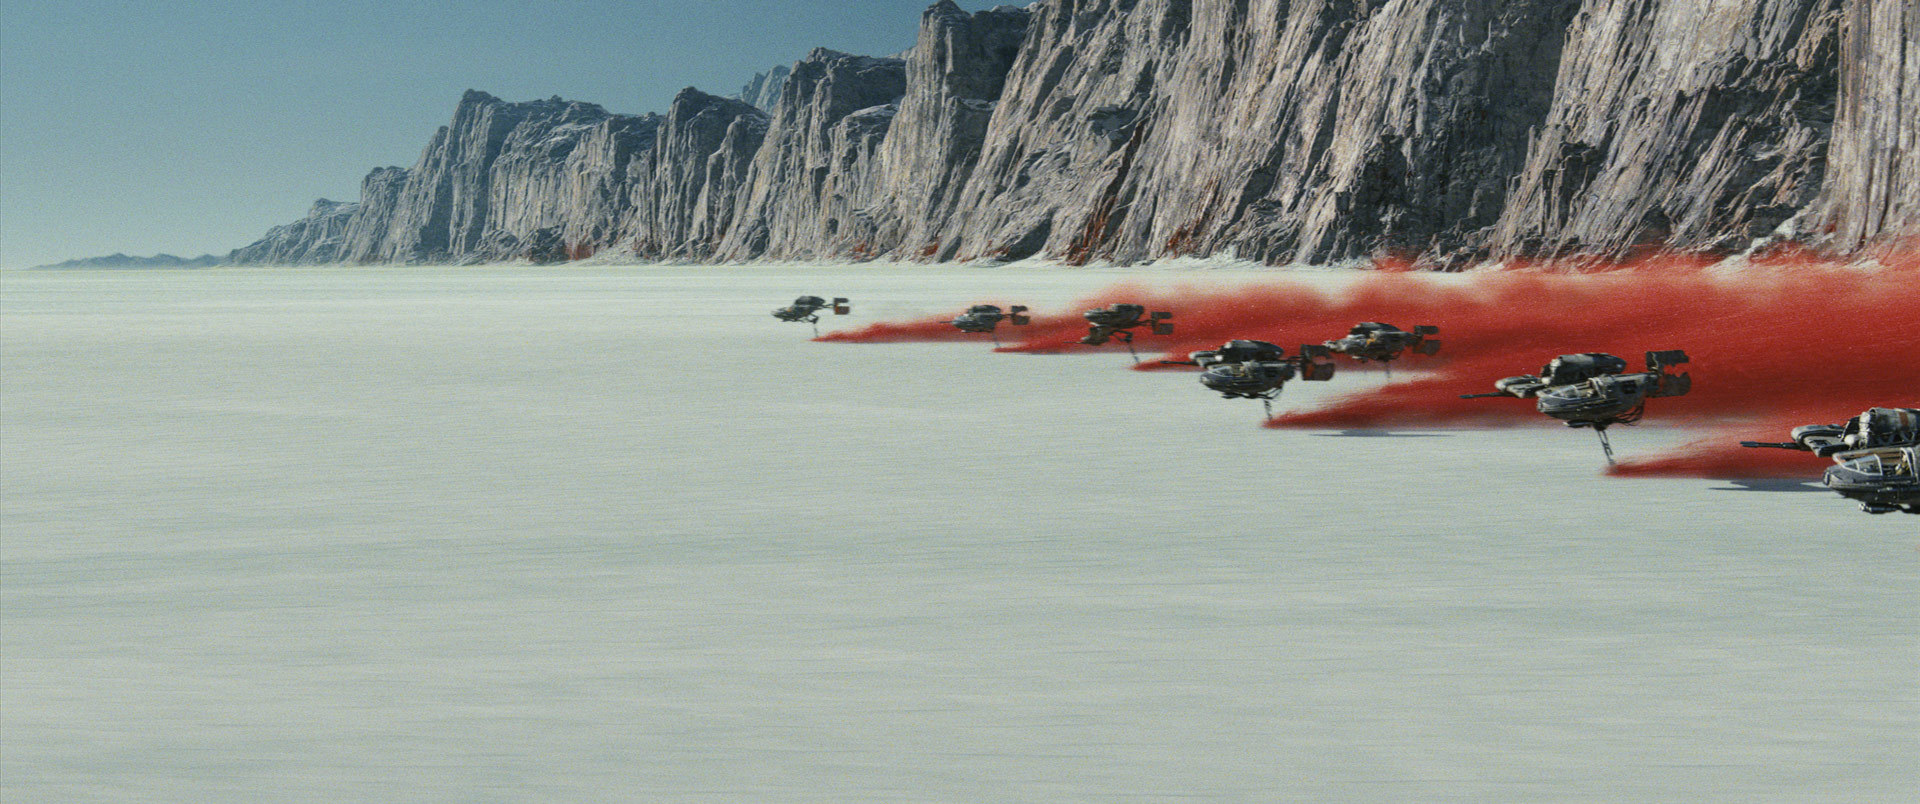 The Breathtaking Bolivian Salt Flats Play an Important Role in 'Star Wars: The Last Jedi'